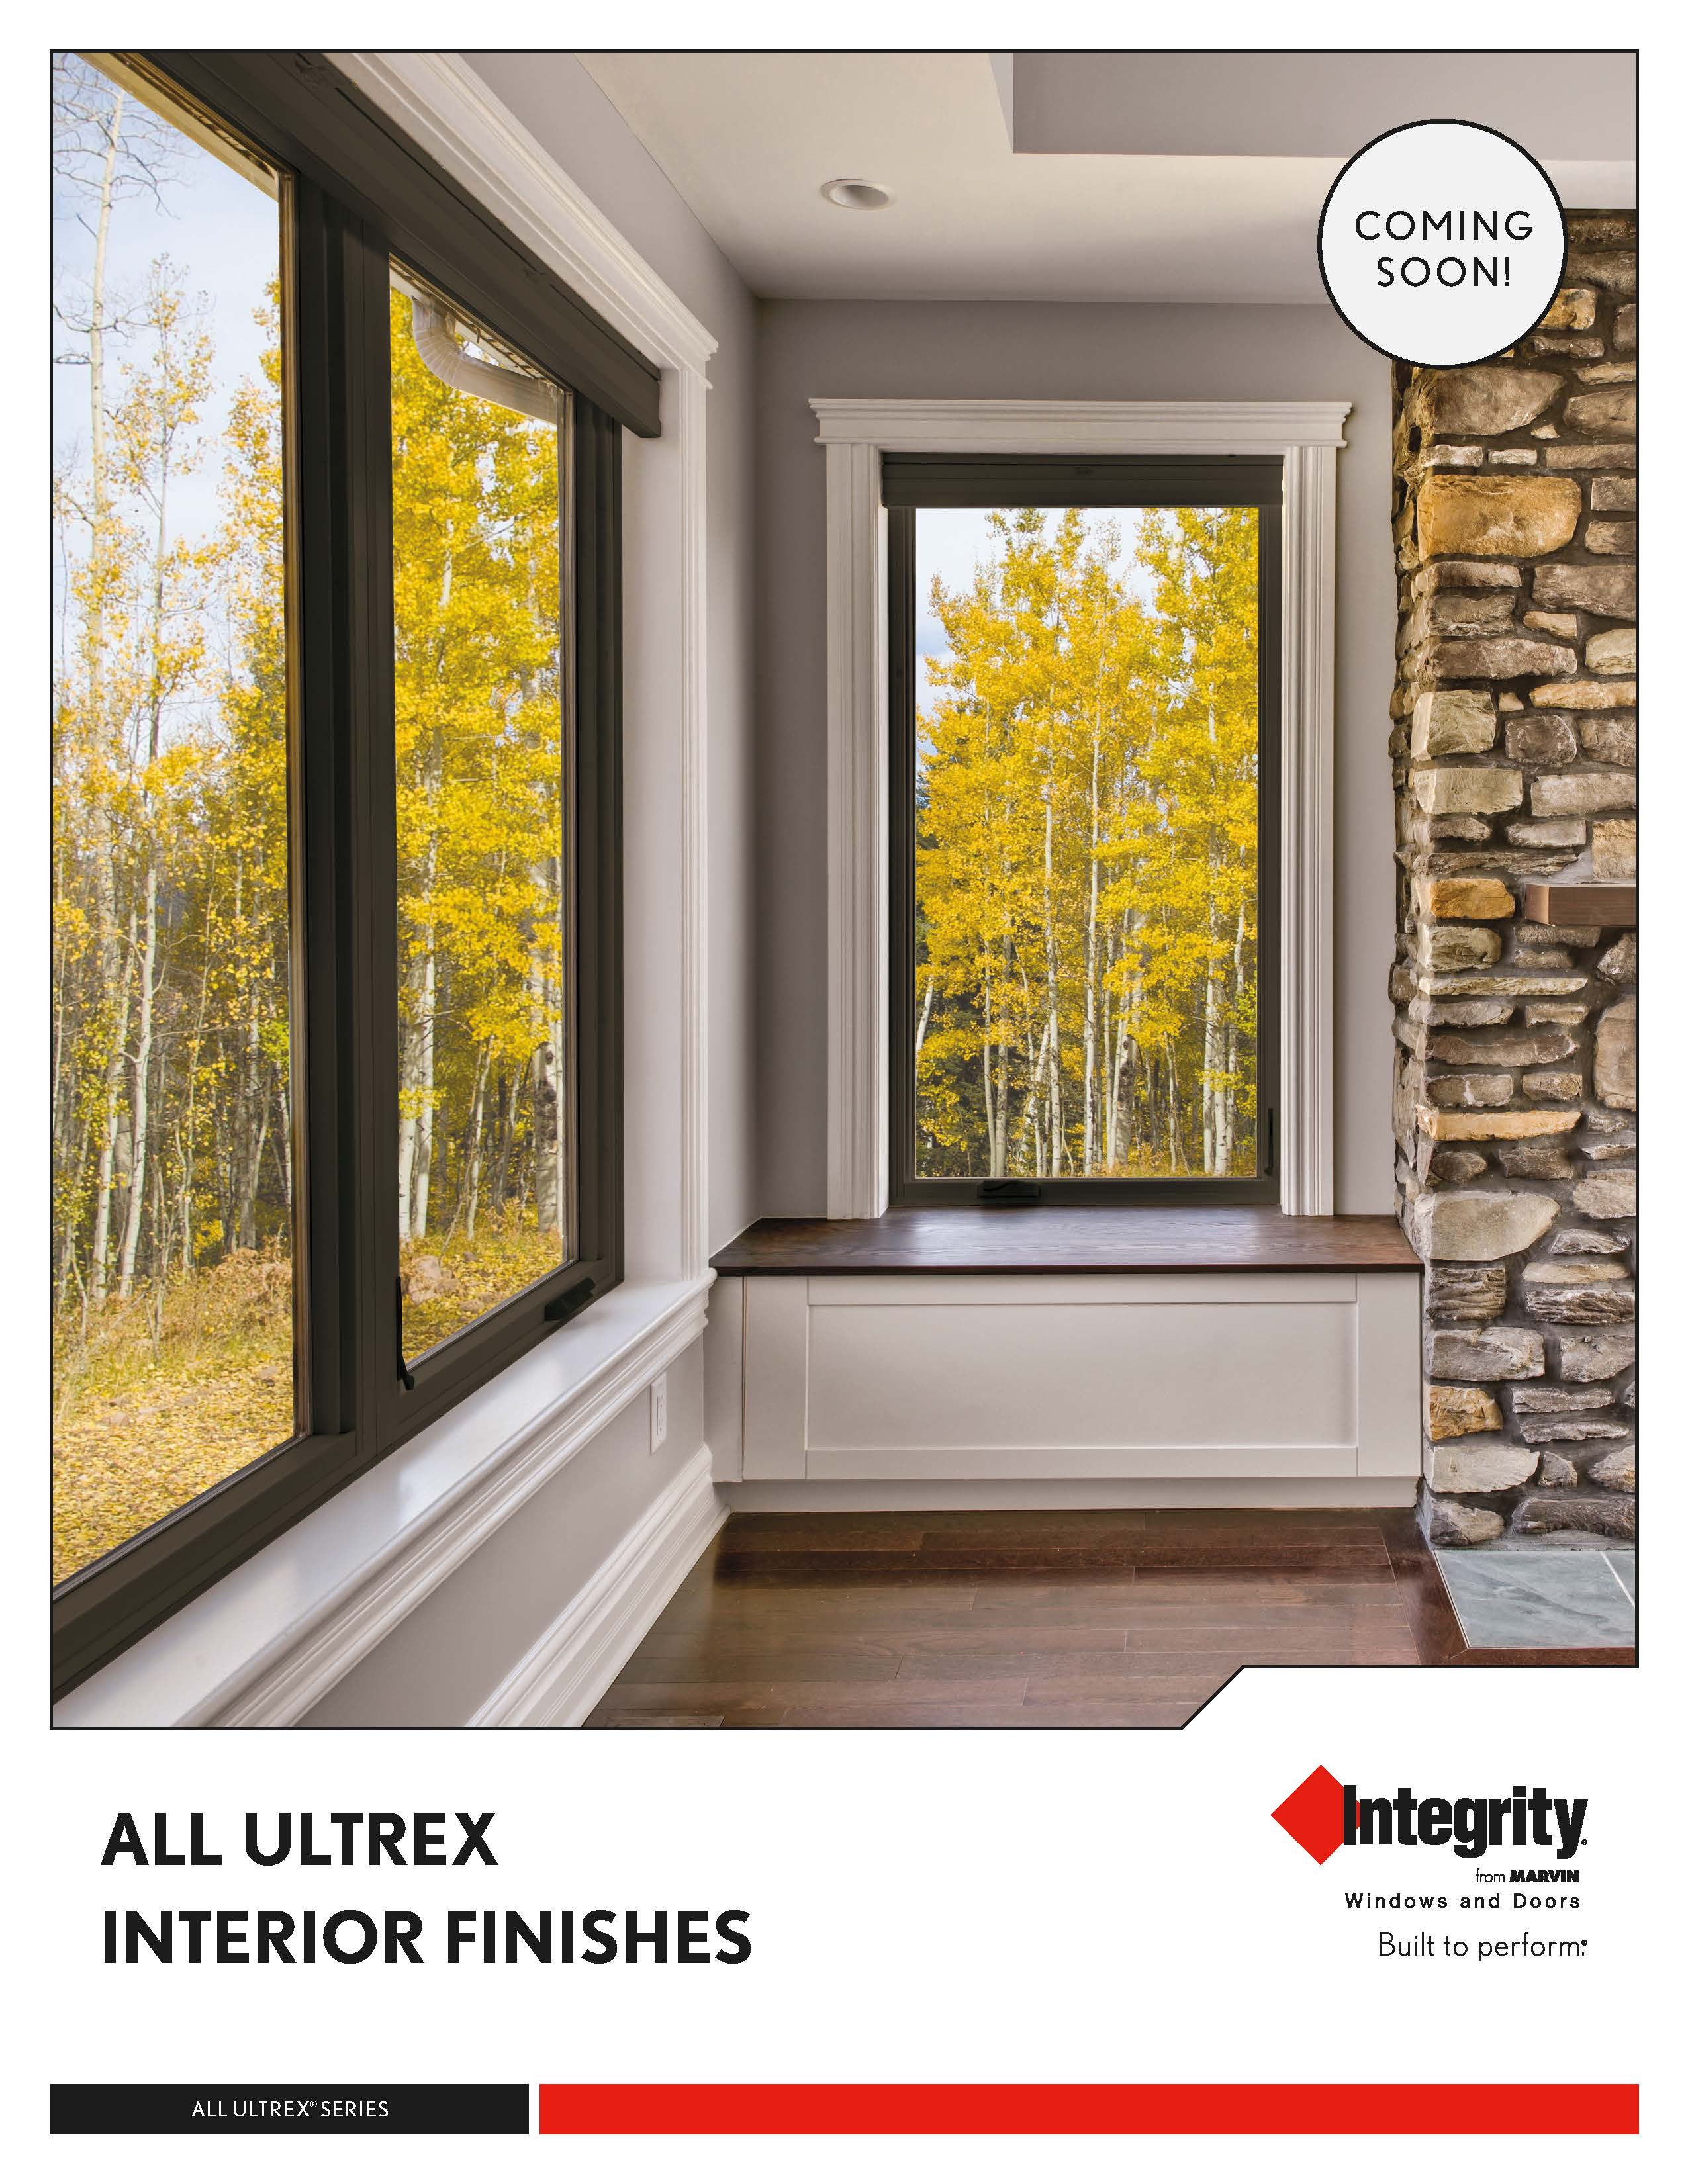 Integrity windows now have all black windows for Marvin all ultrex